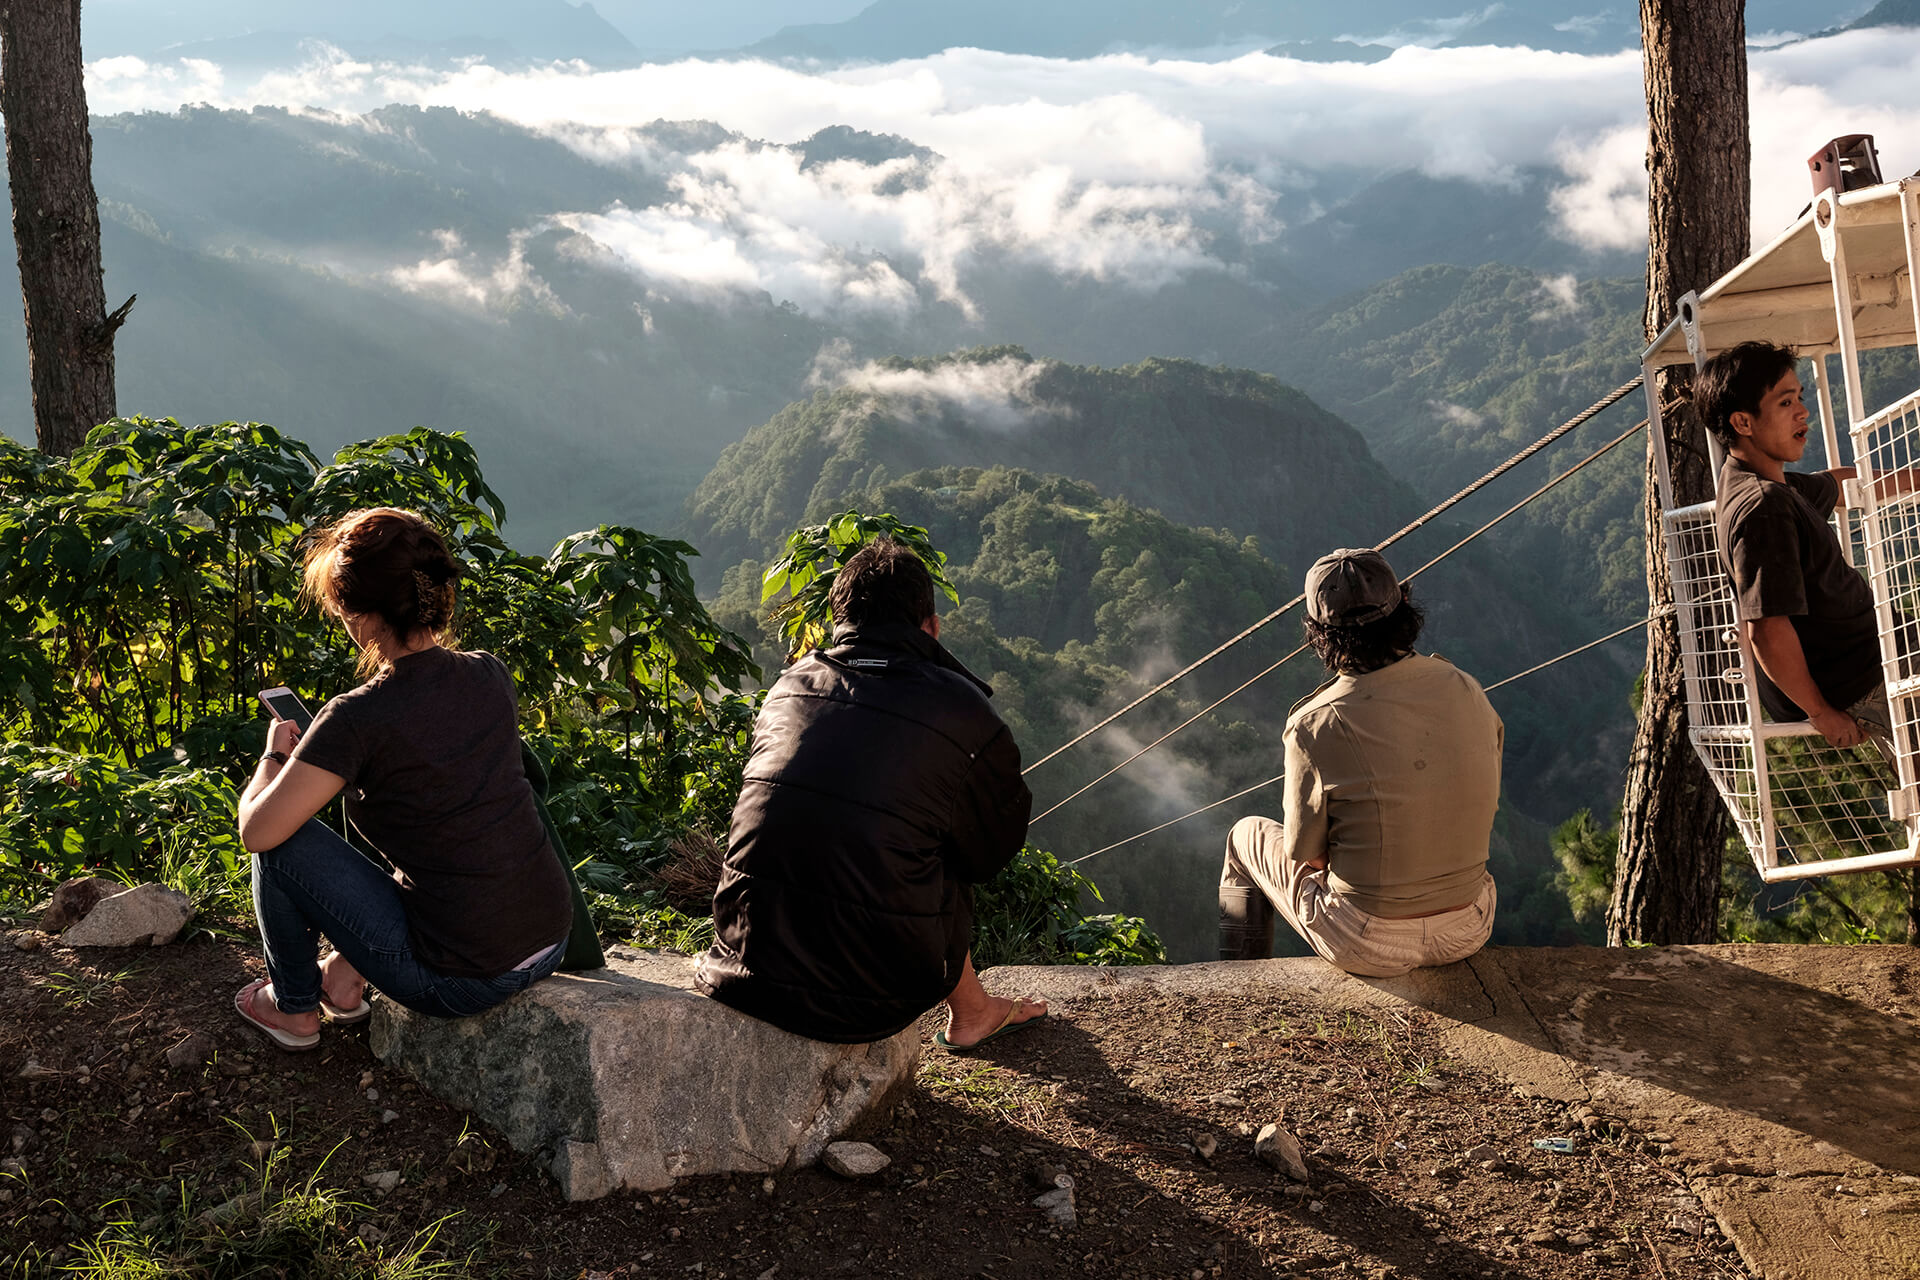 Locals and traveller alike sit on the ledge overlooking the mountain tops of Benguet and an aged container contraption